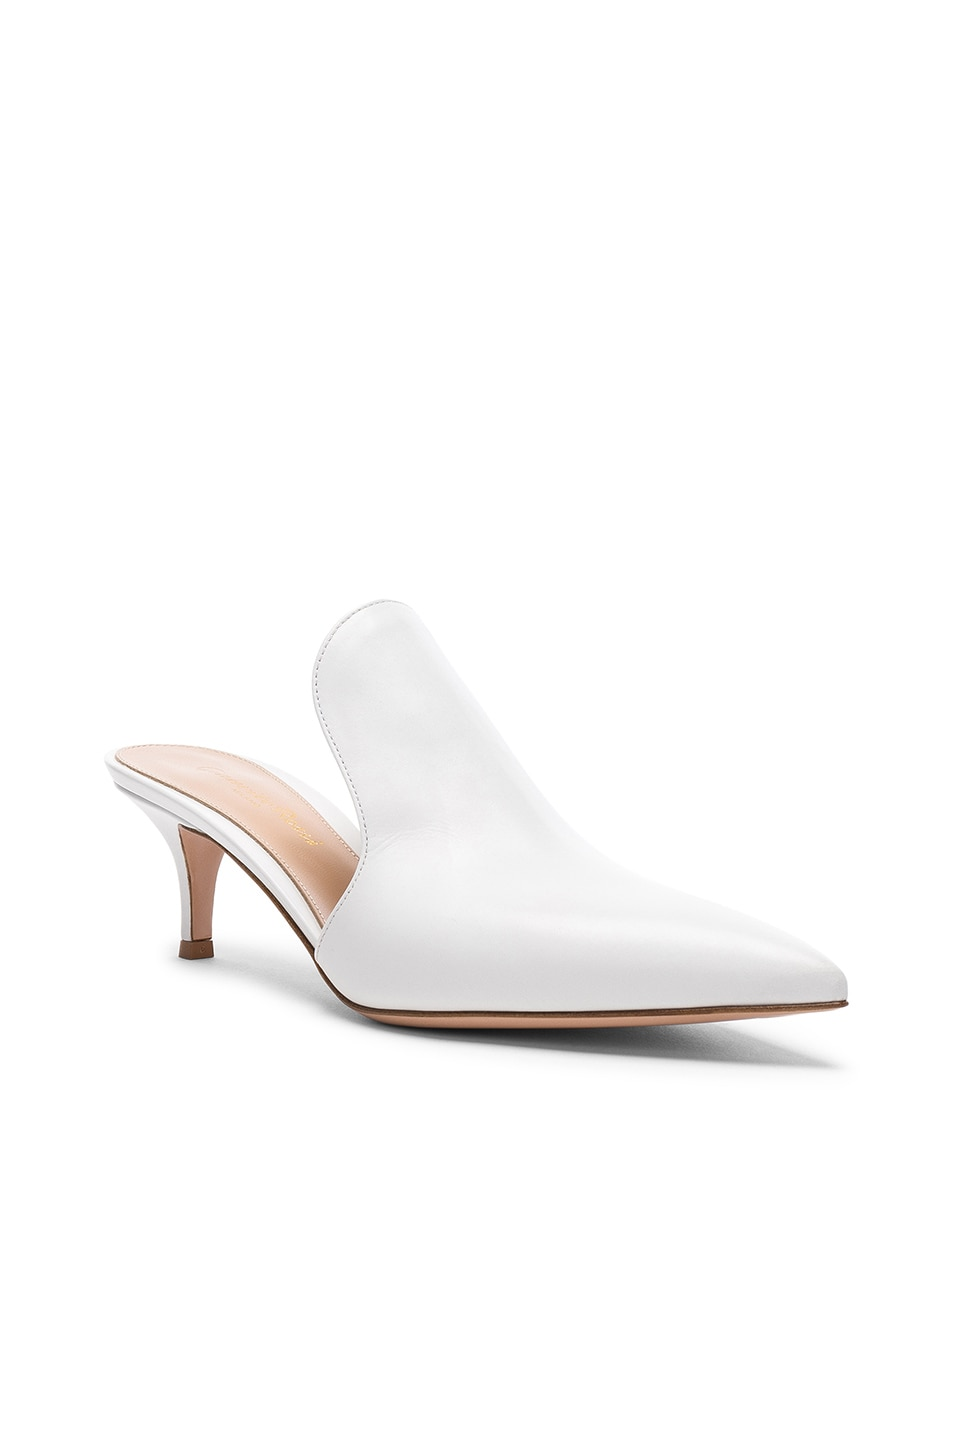 Image 2 of Gianvito Rossi Leather Aramis Kitten Heel Mules in White